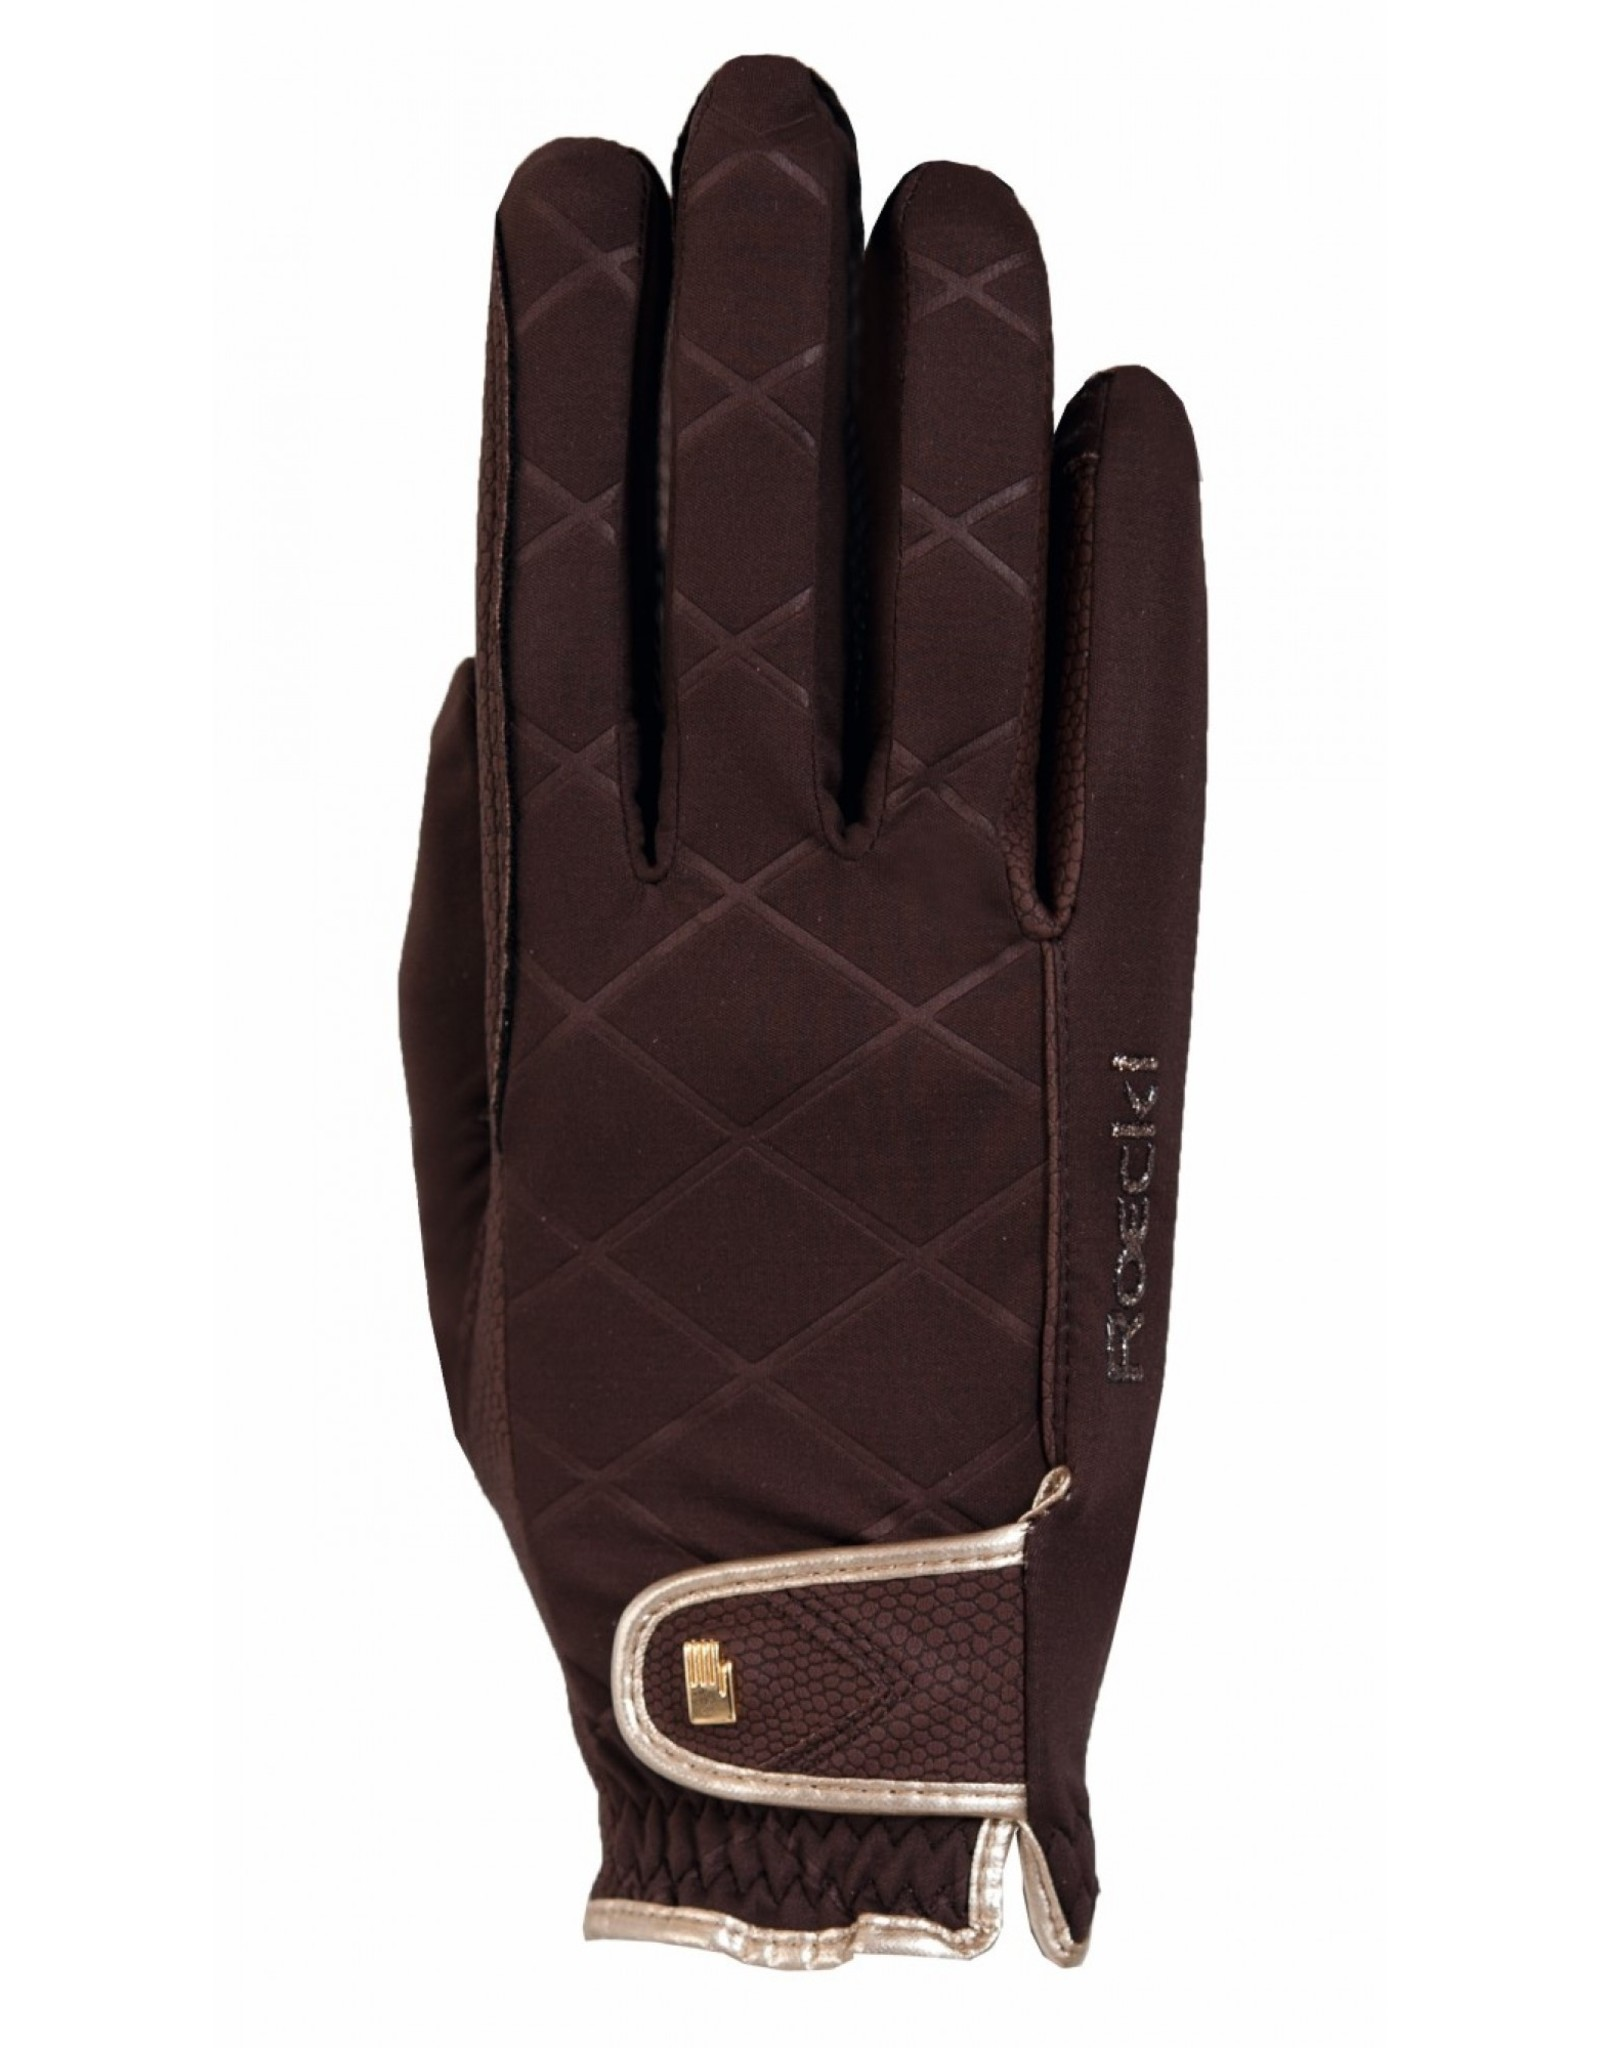 ROECKL JULIA WINTER GLOVE